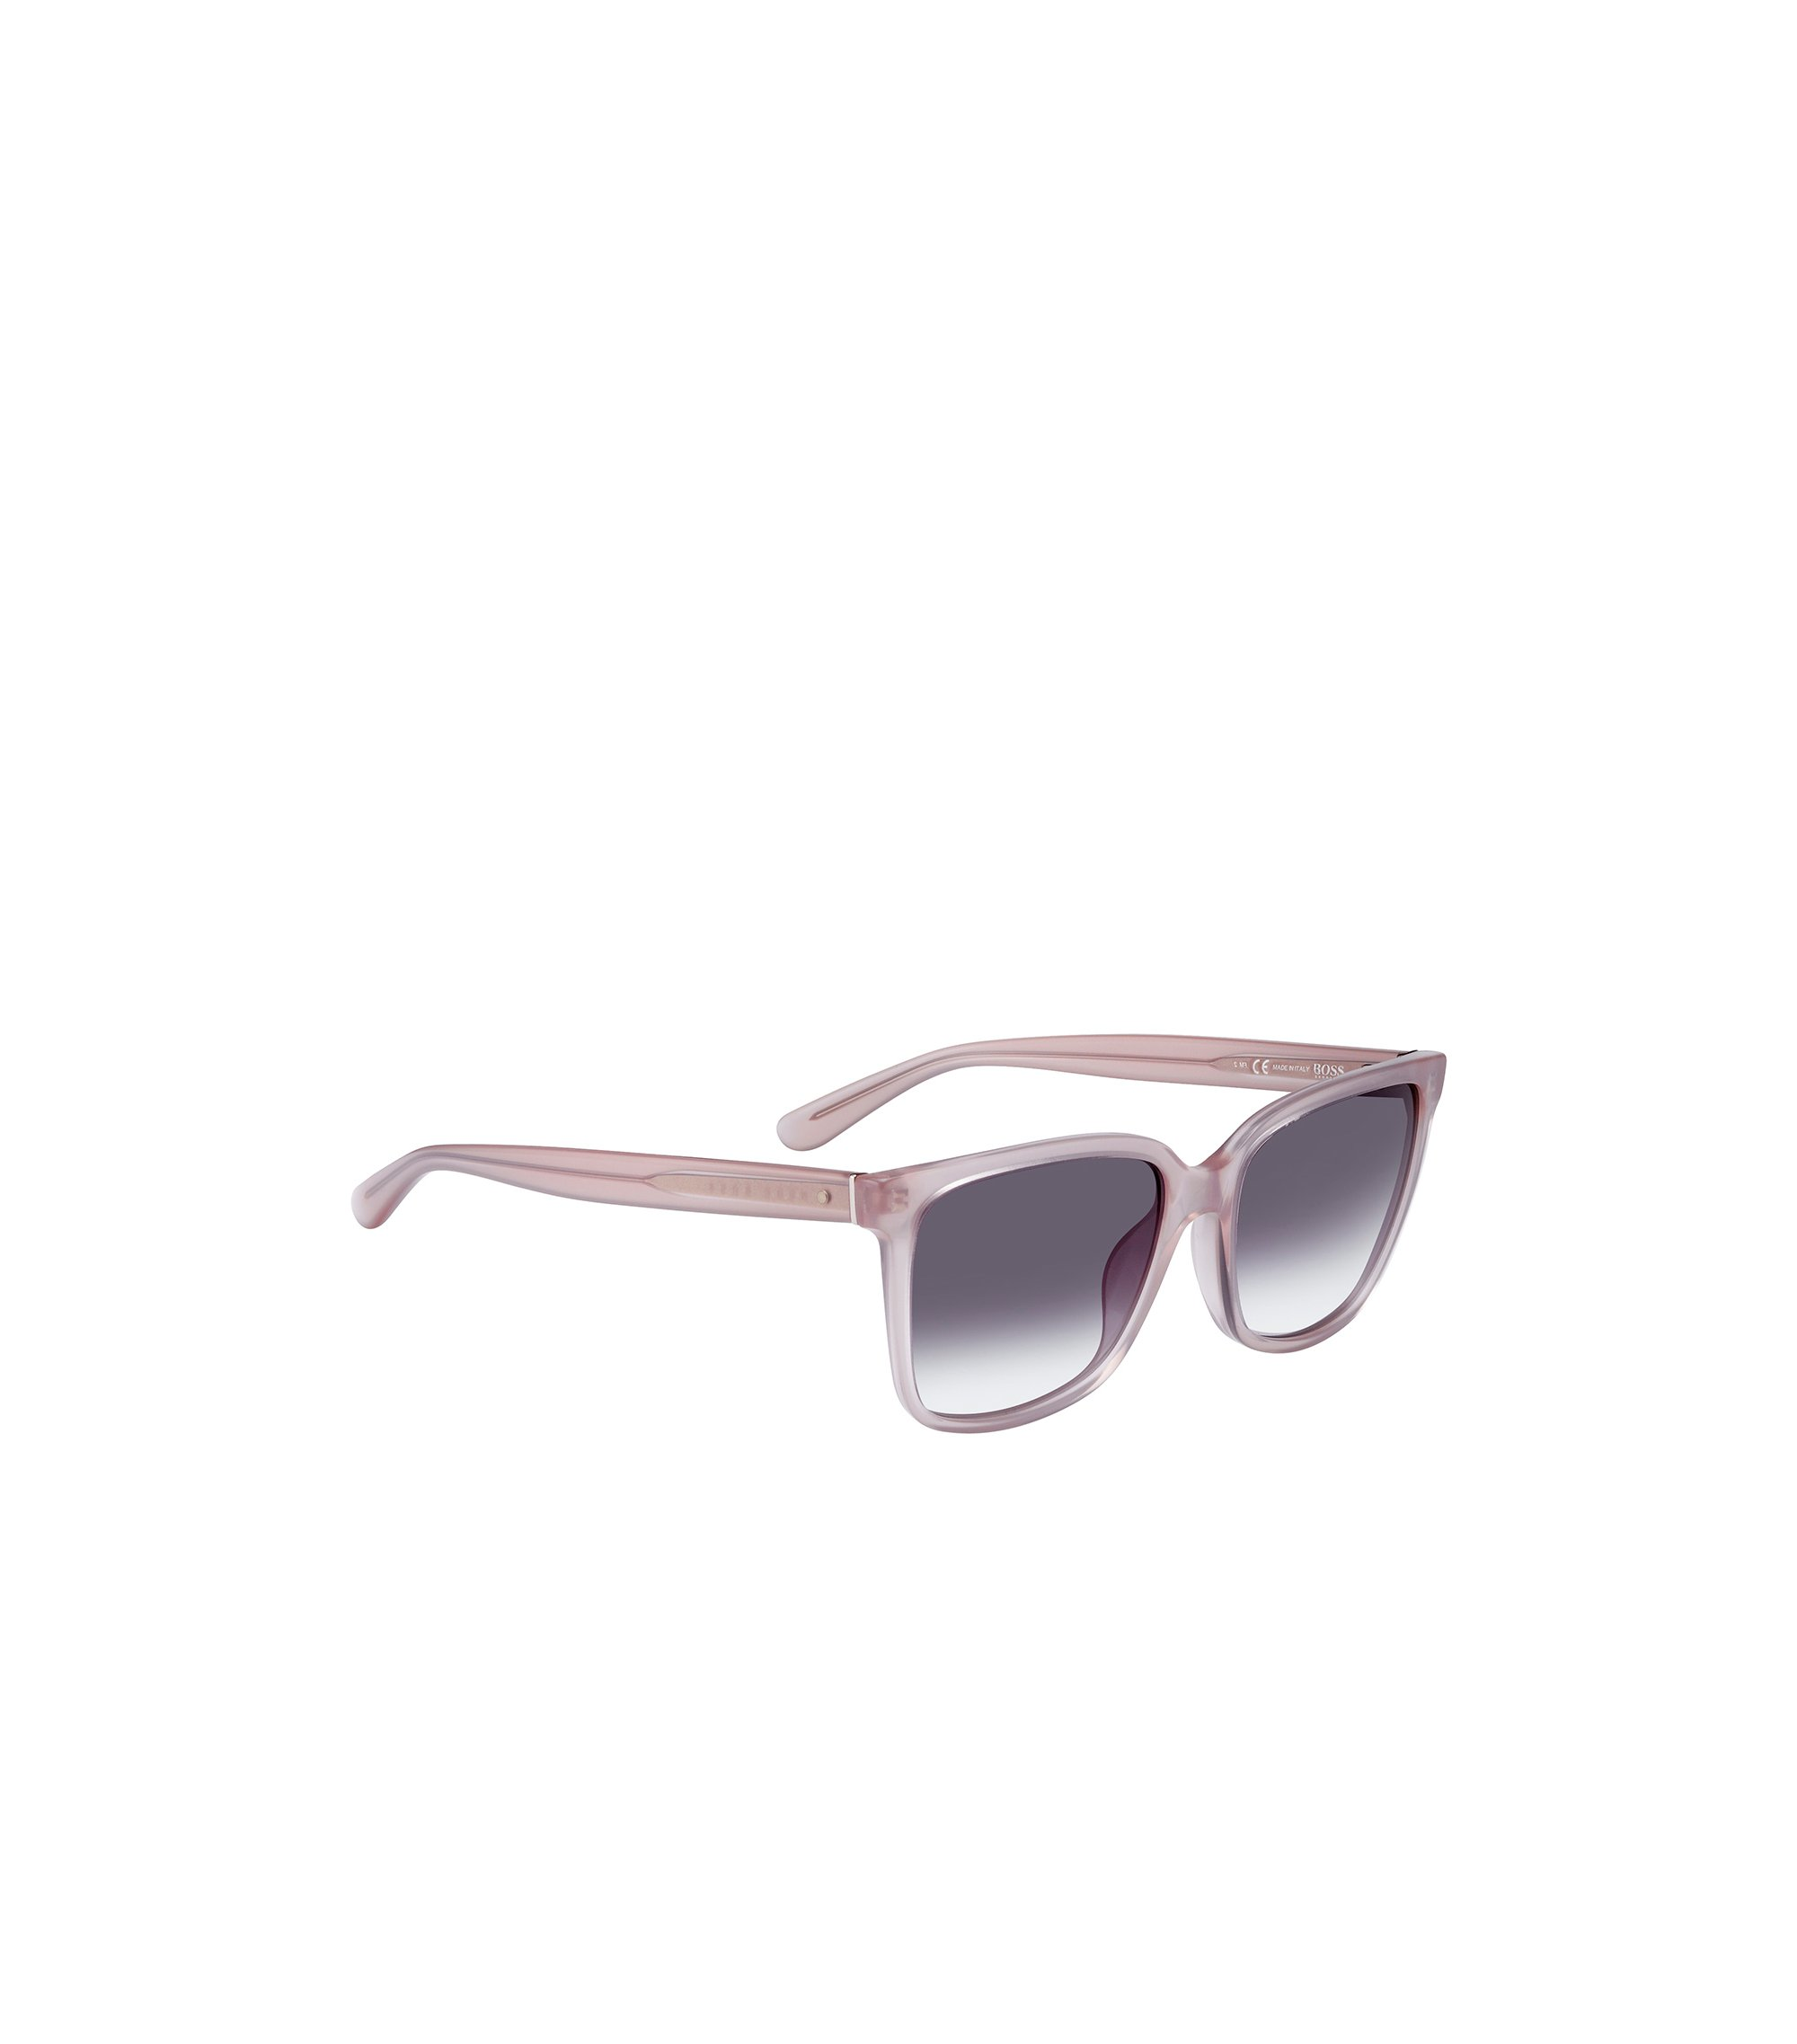 Gray Gradient Lens Square Sunglasses | BOSS 0787S, Assorted-Pre-Pack